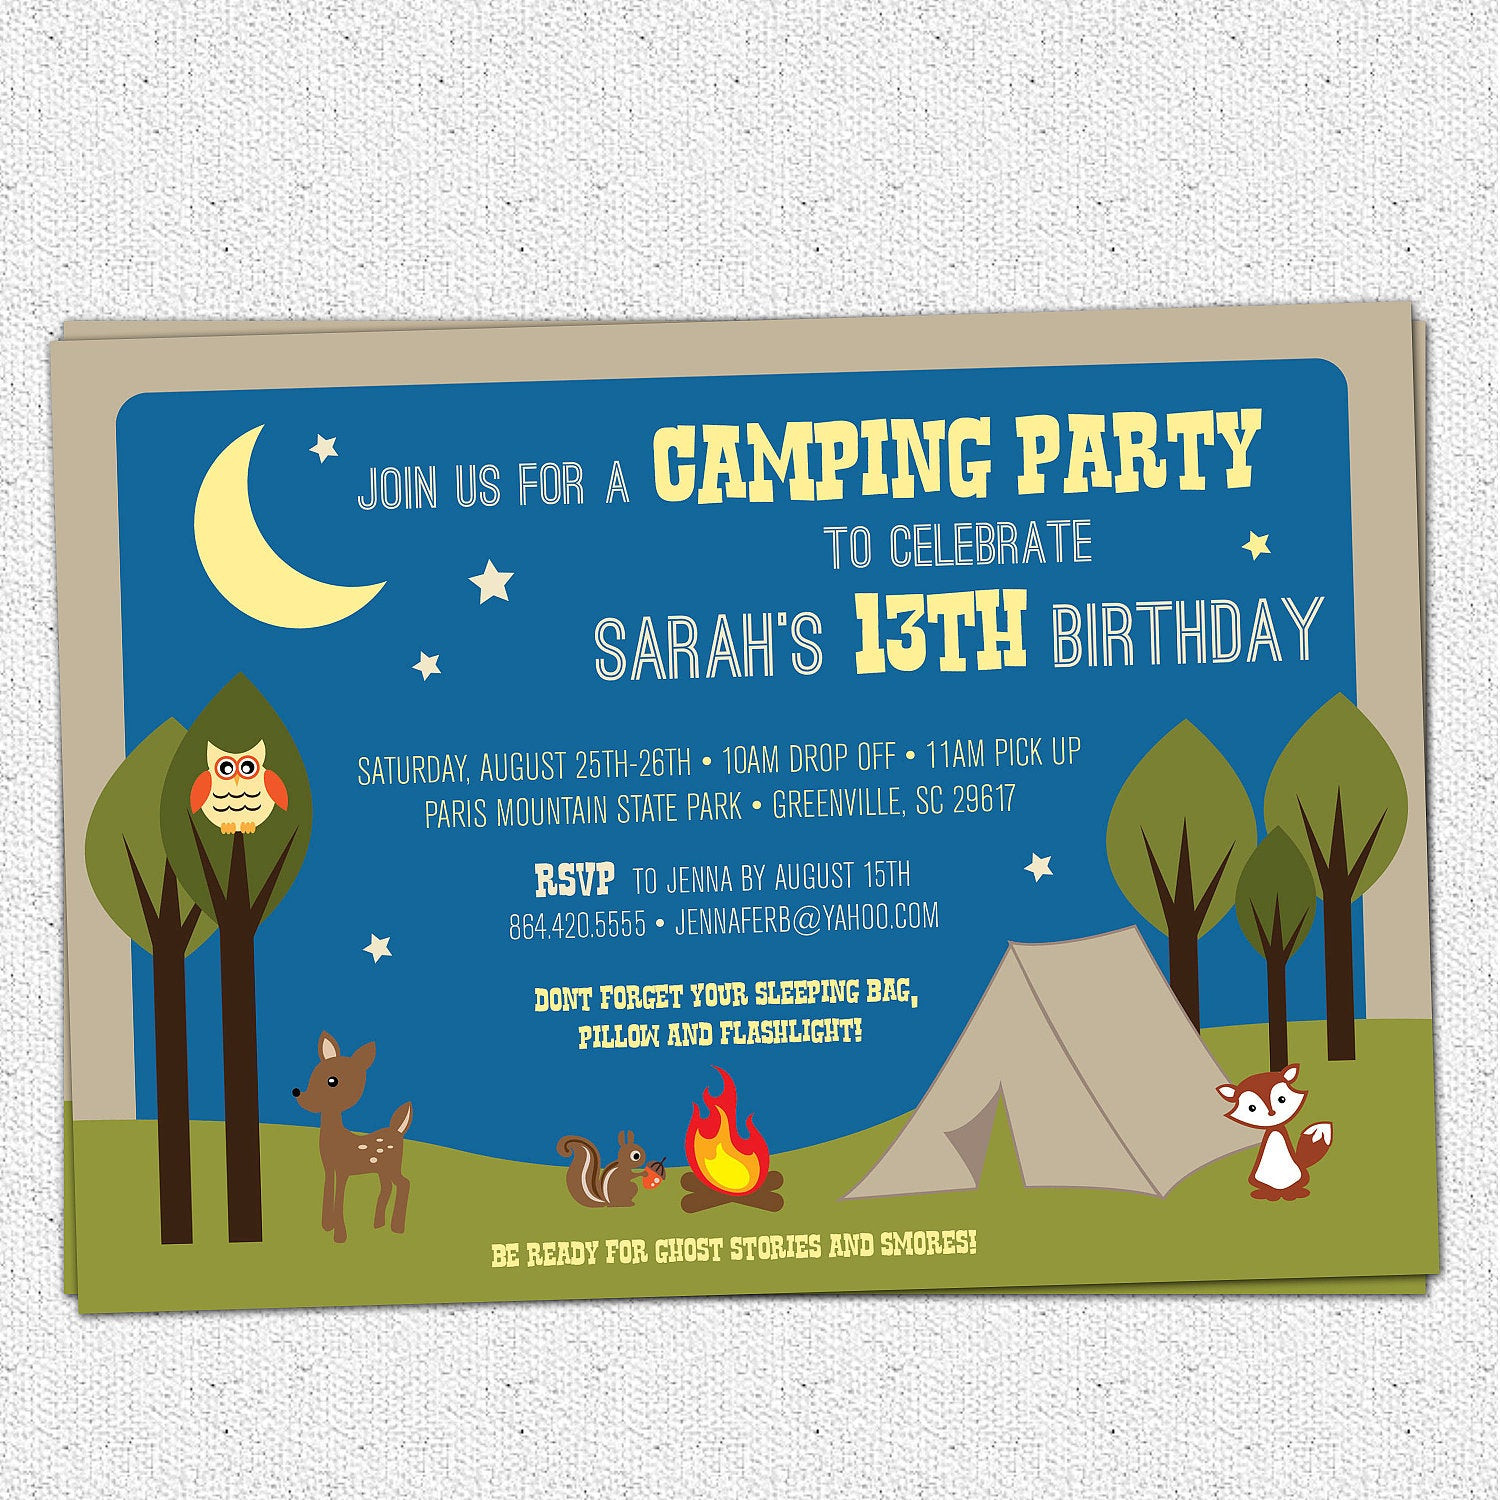 Best ideas about Camping Birthday Invitations . Save or Pin Camping Party Invitation Birthday Summer Woodland Animals Now.